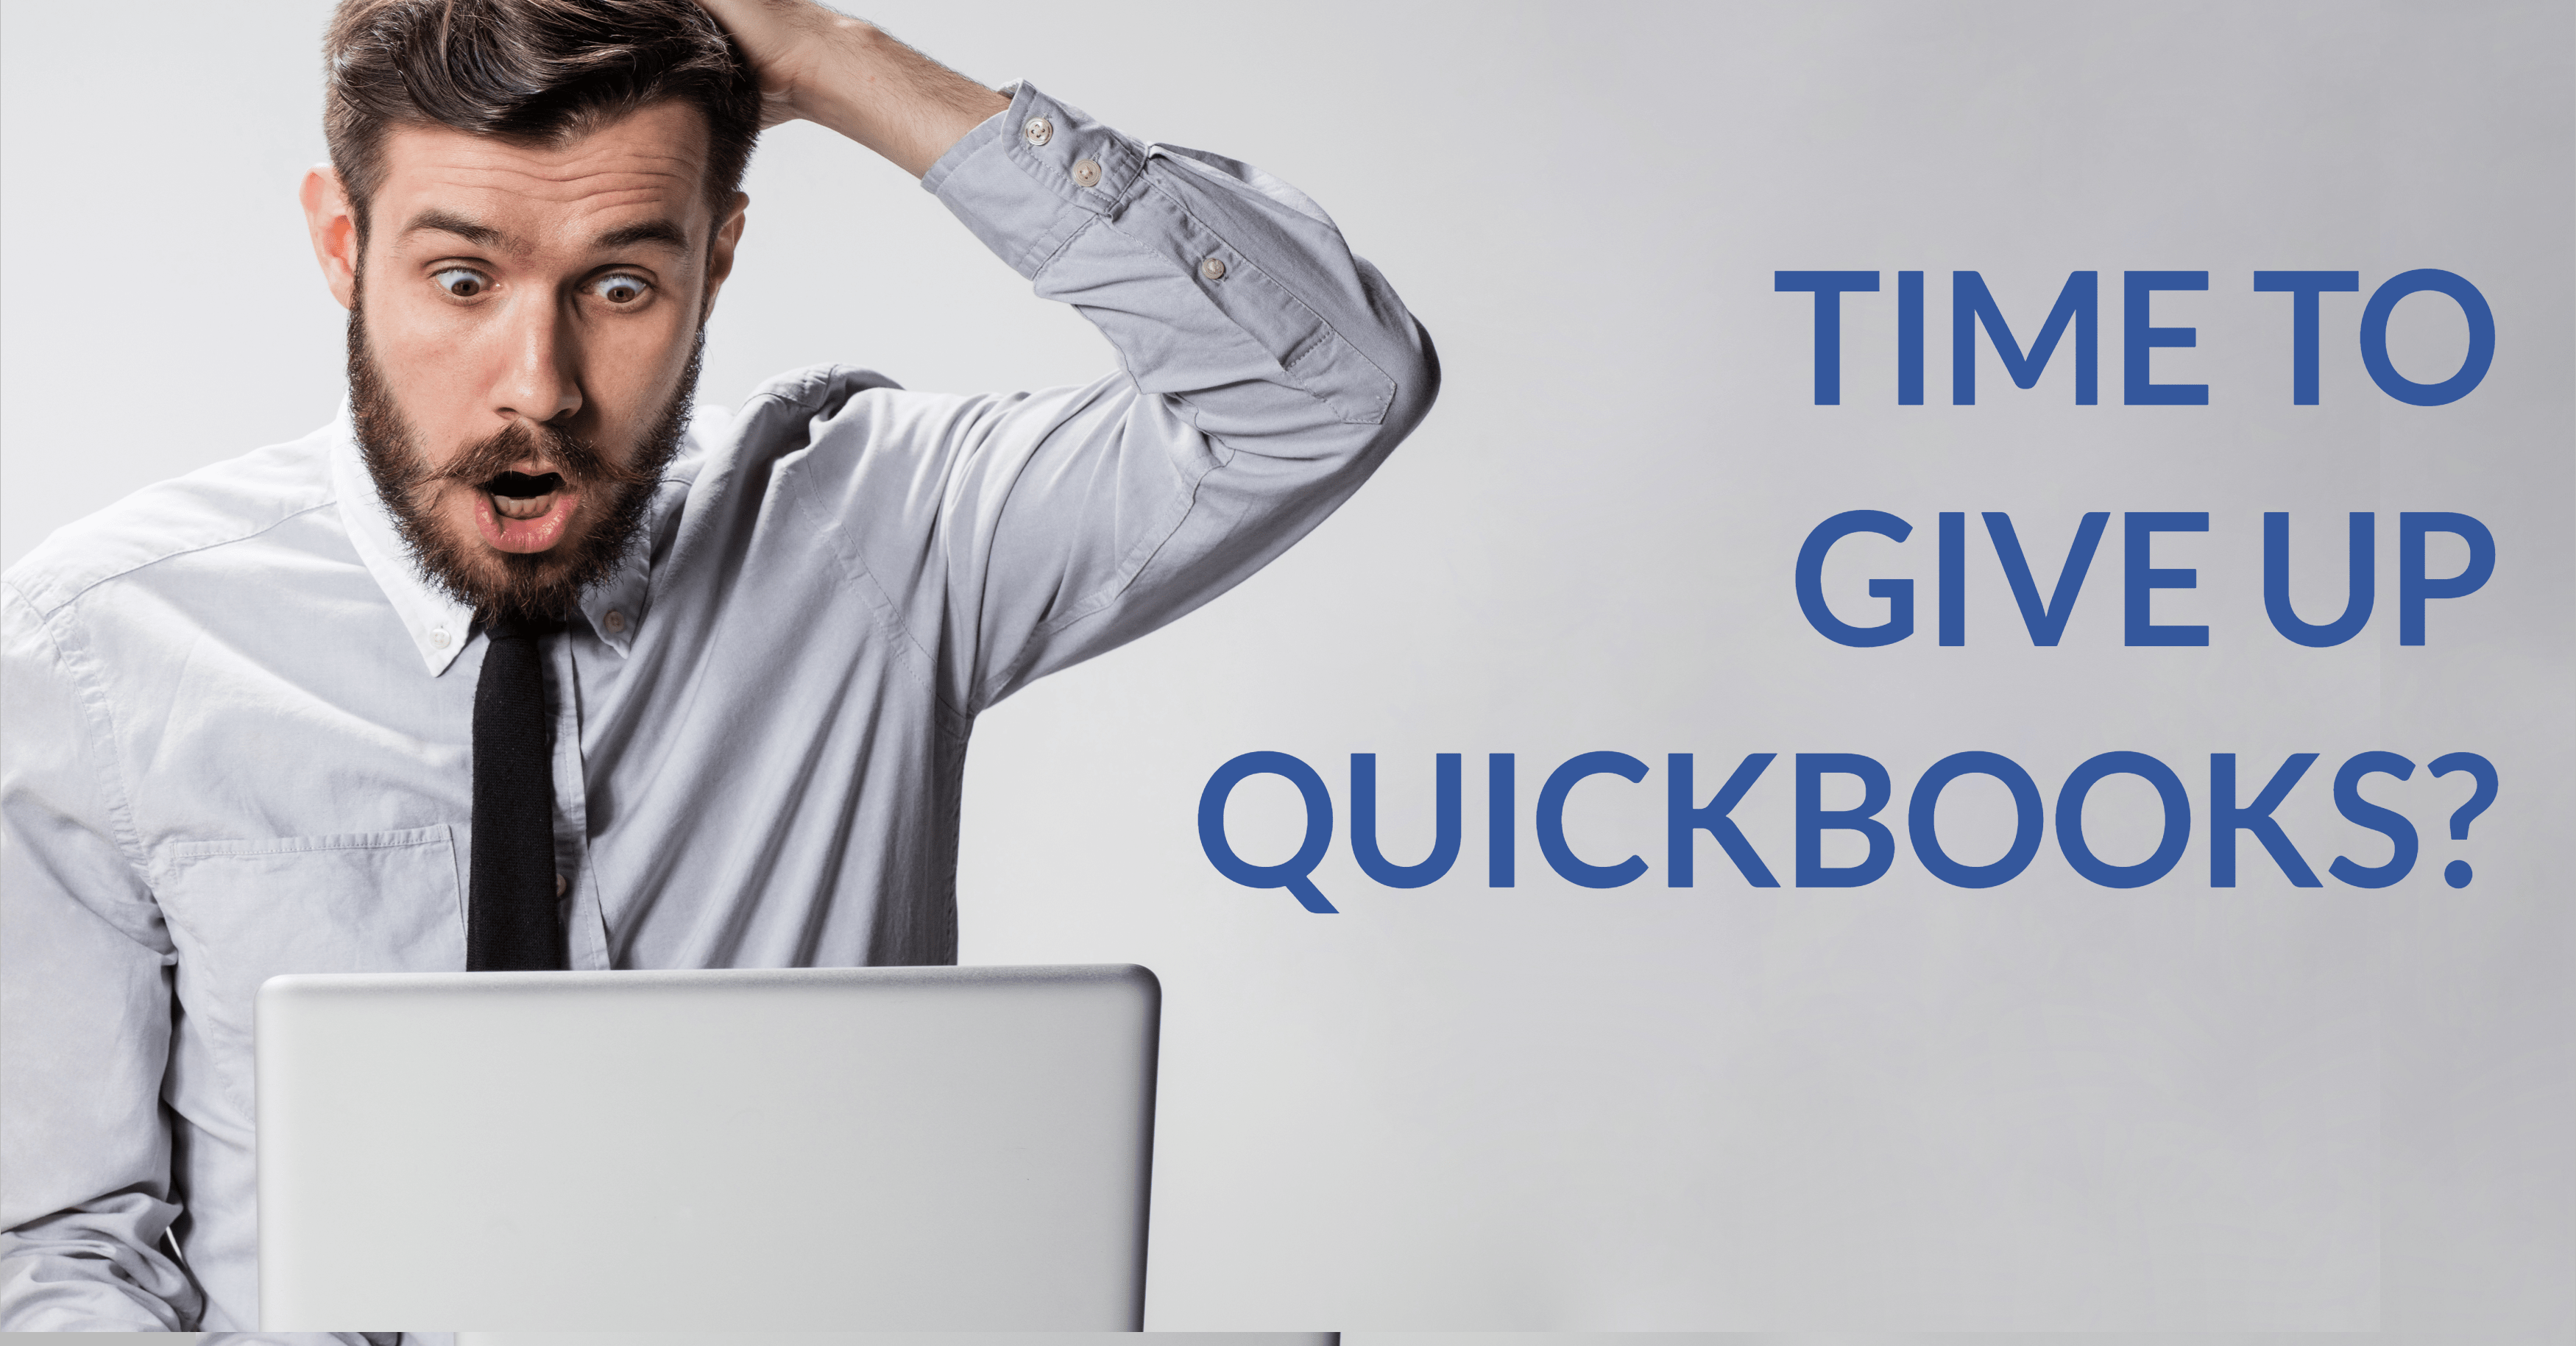 Is it Time to Give Up QuickBooks?